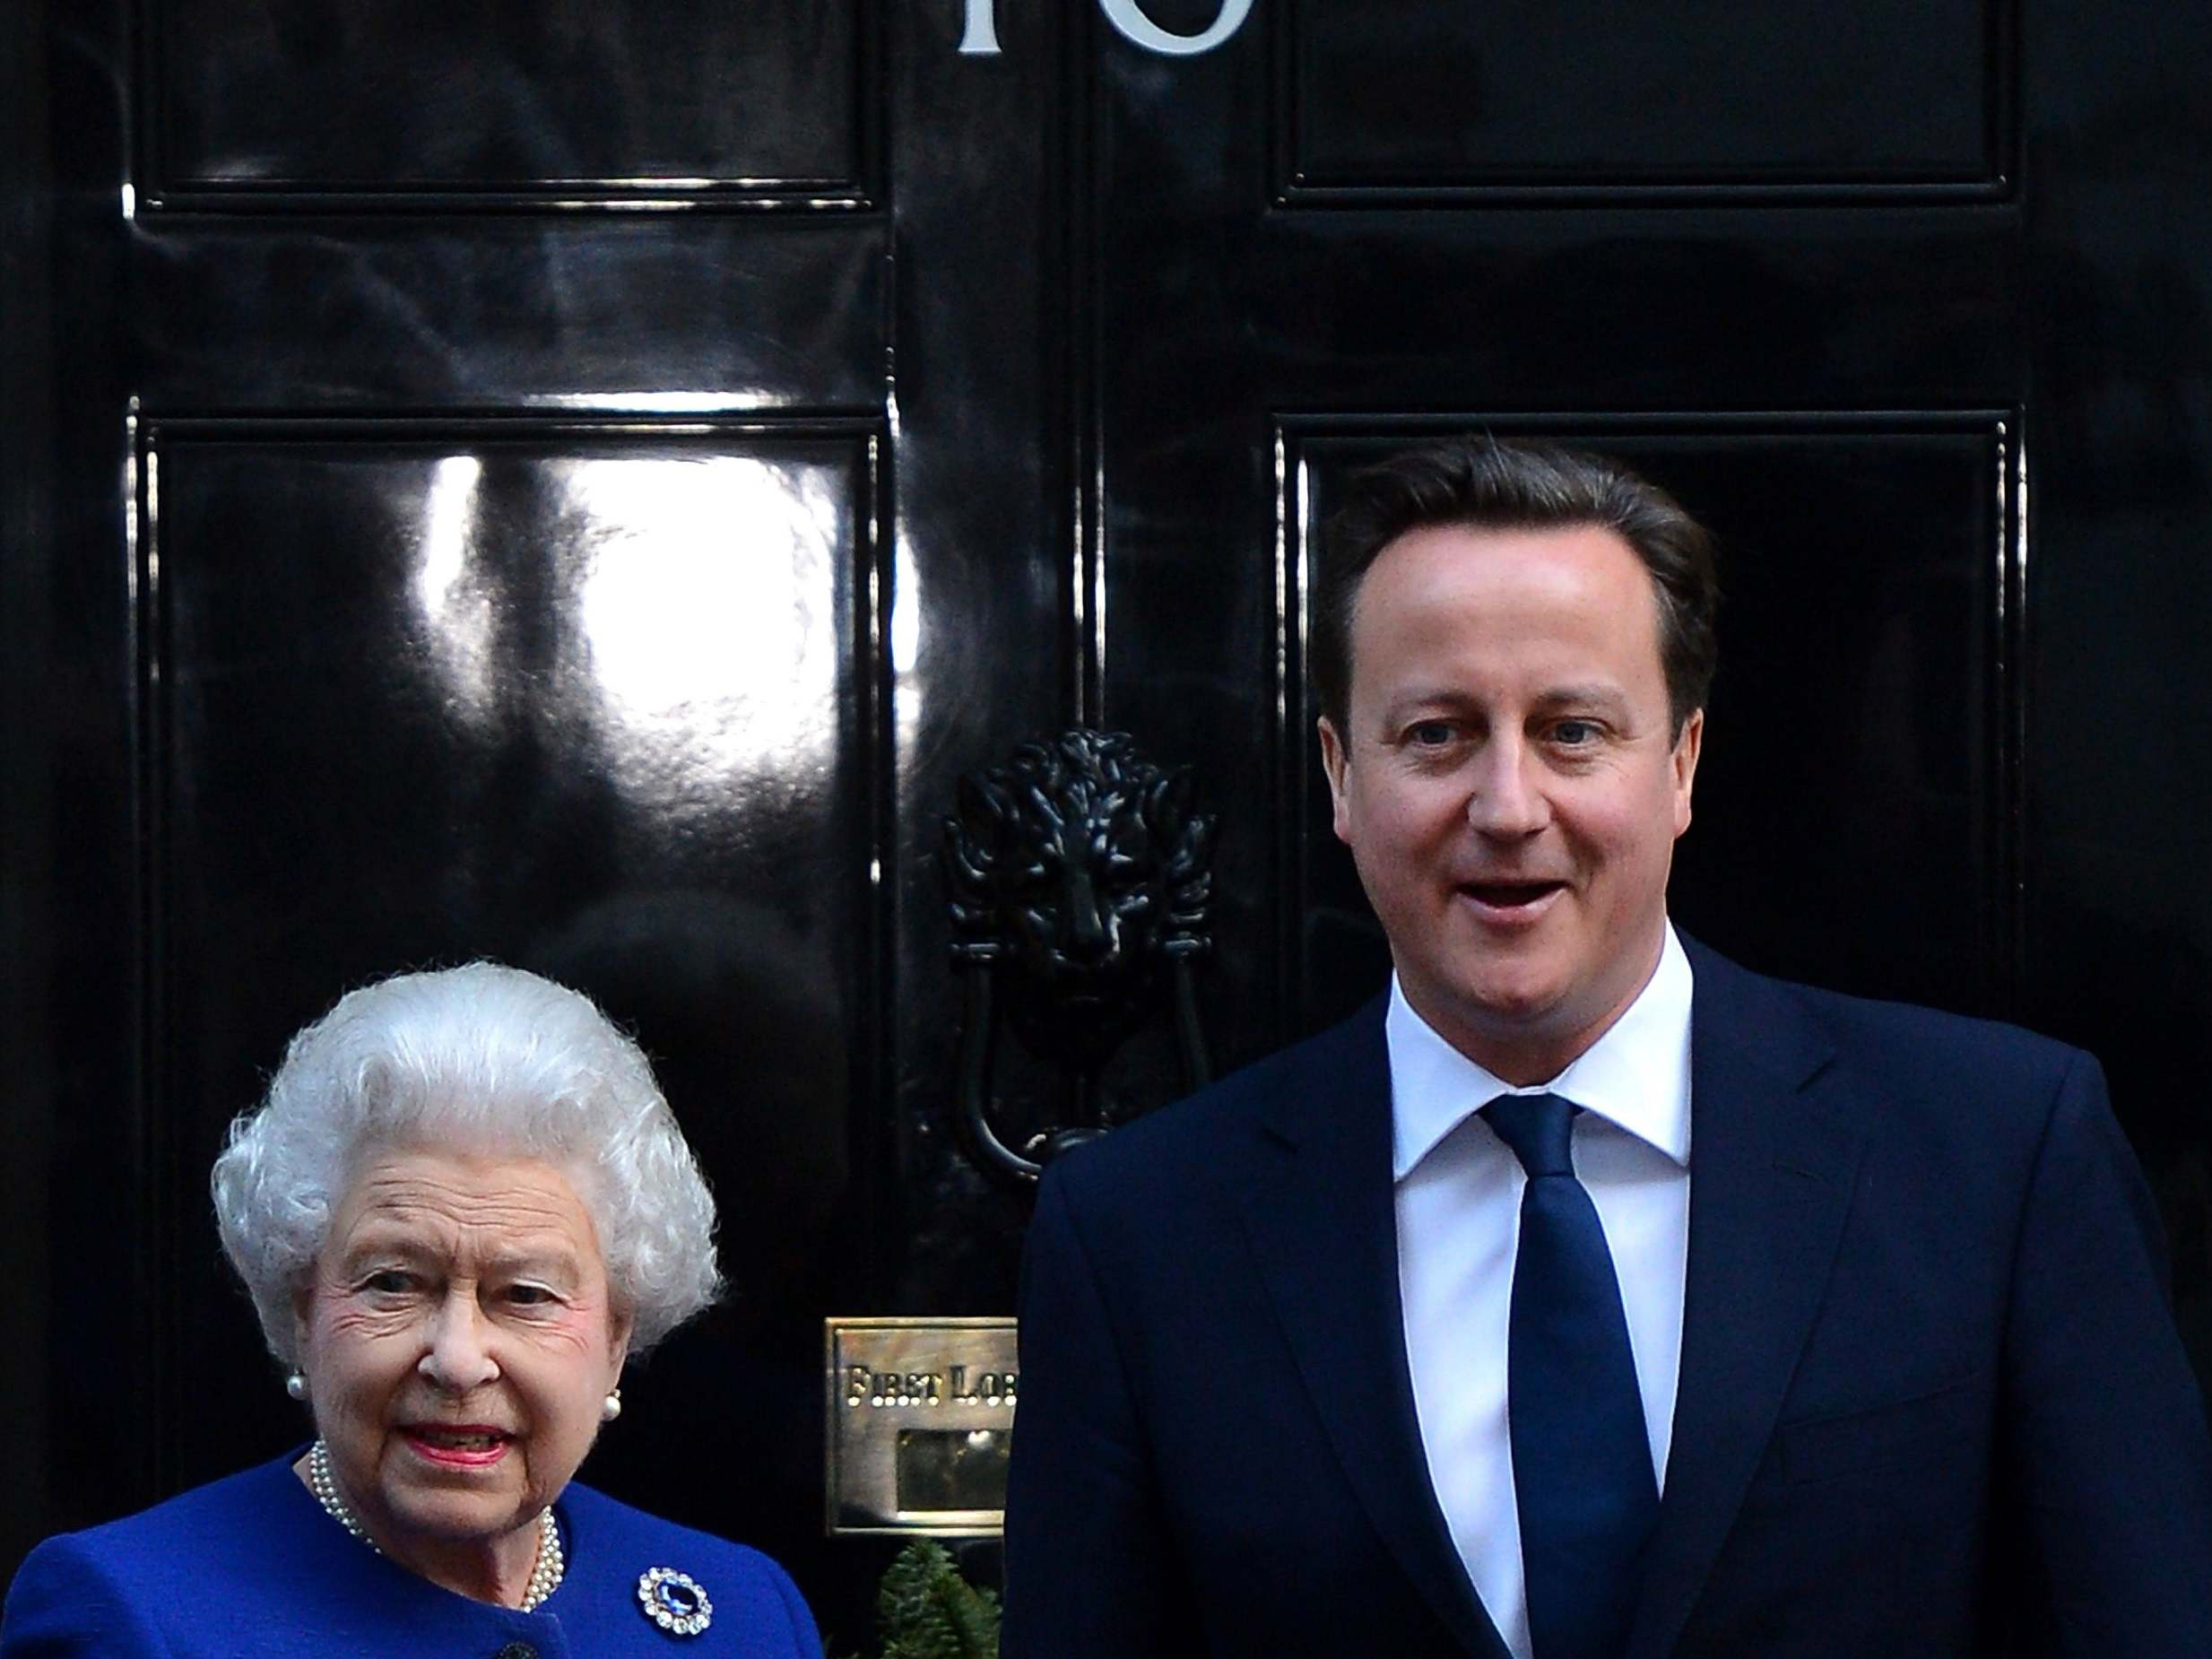 Buckingham Palace 'displeased' by David Cameron's comments about seeking Queen's help during Scottish referendum